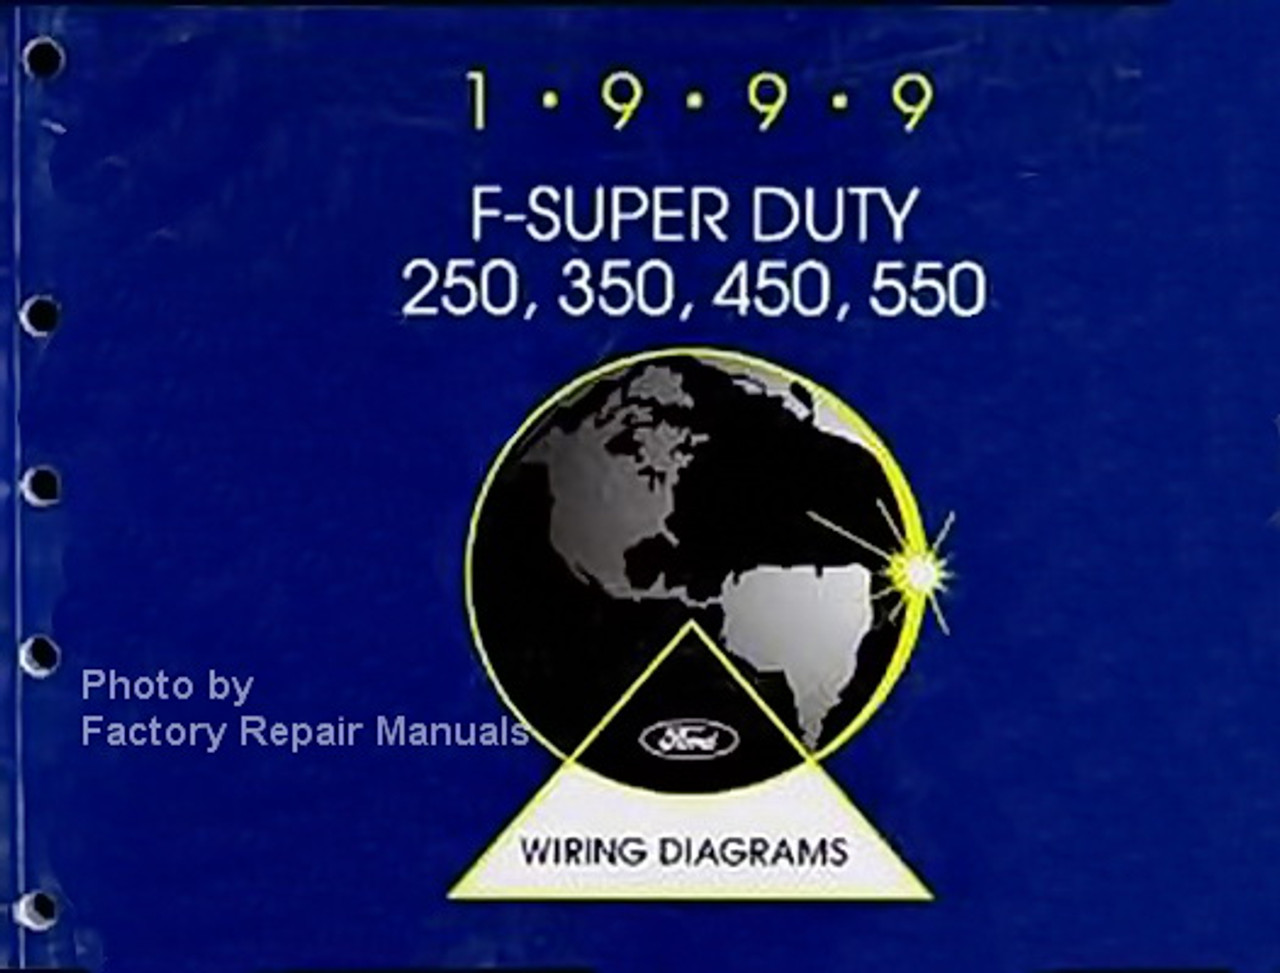 1999 Ford F250 F350 F450 F550 Super Duty Electrical Wiring Diagrams New Factory Repair Manuals